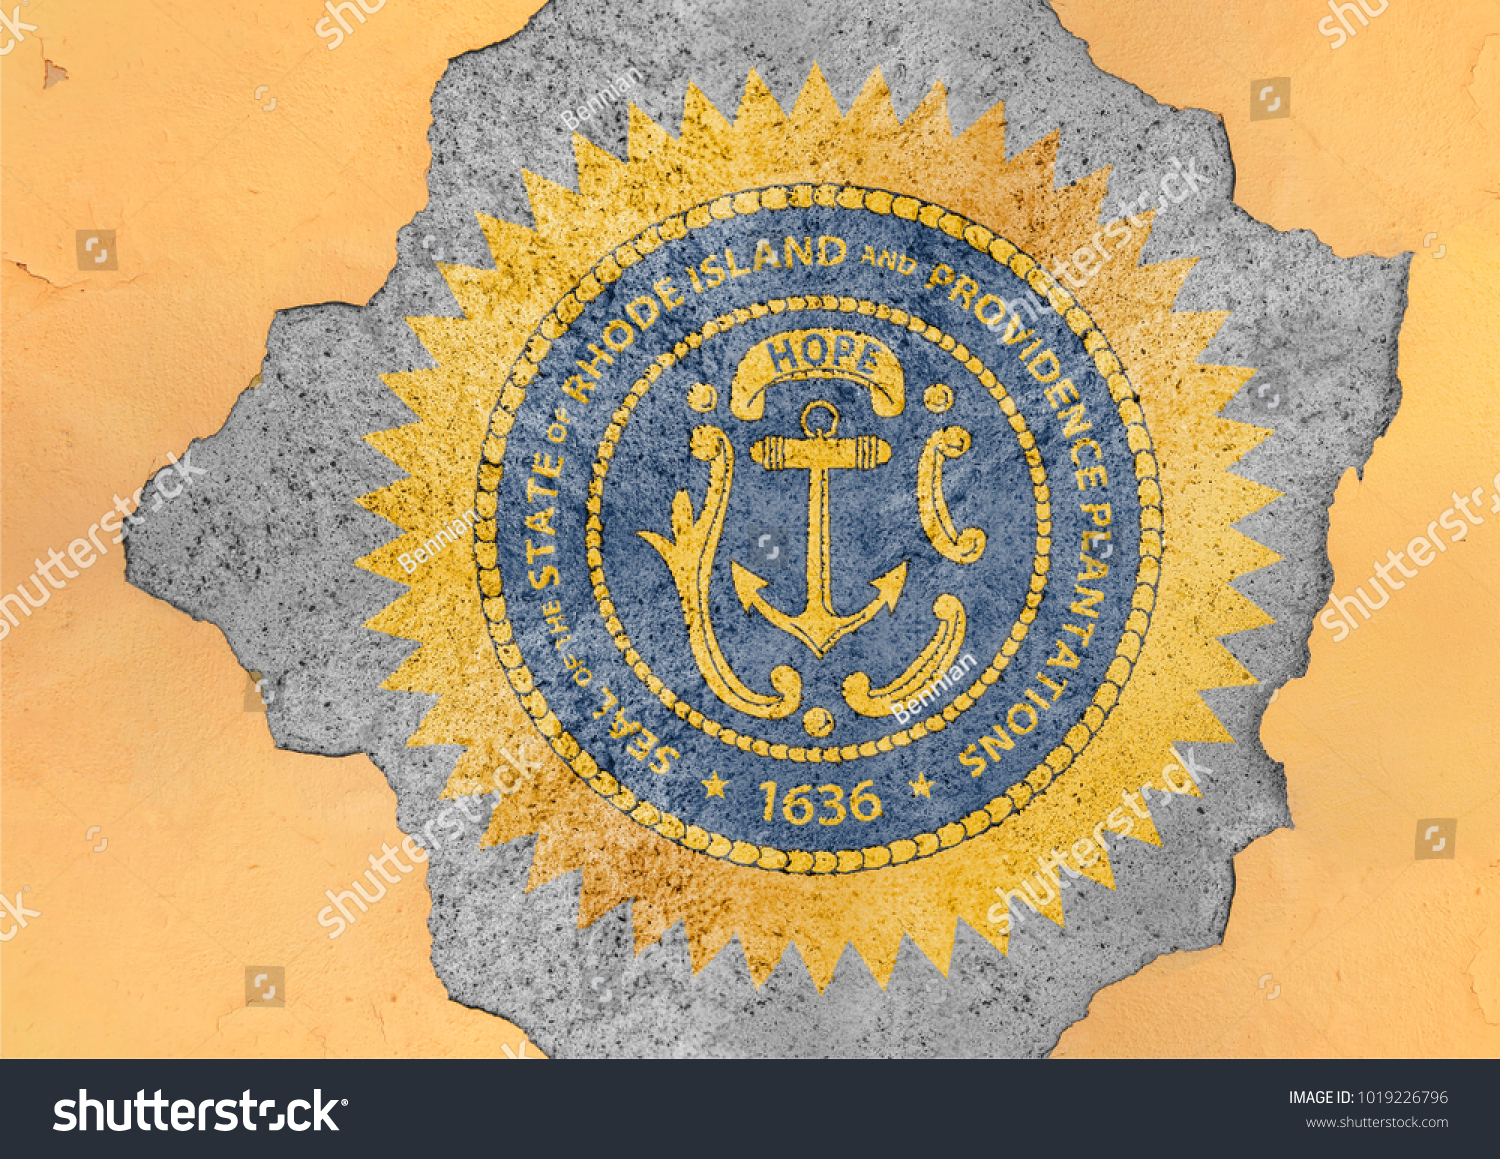 Cracked hole us state rhode island stock photo 1019226796 cracked hole with us state rhode island seal flag abstract in facade structure big damaged concrete biocorpaavc Choice Image